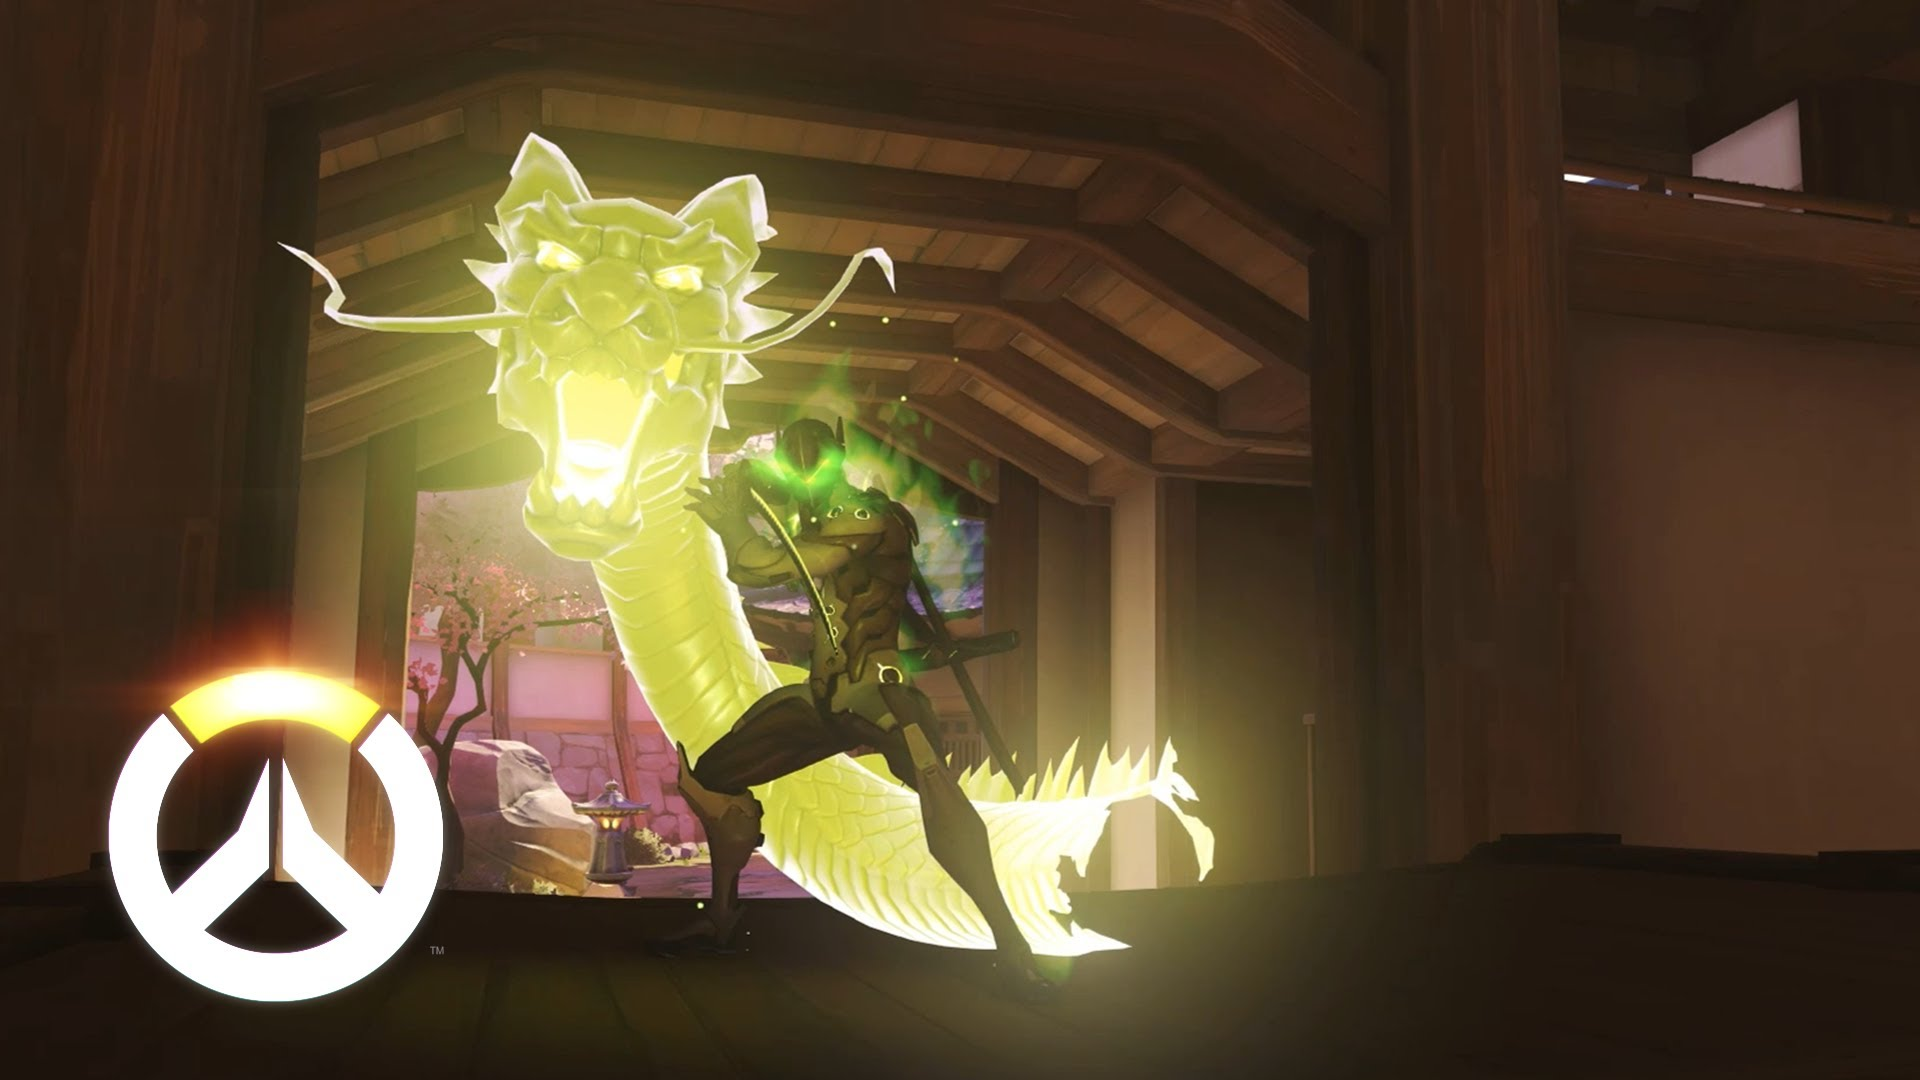 Overwatch Hero Genji Abilities Gameplay 1920x1080